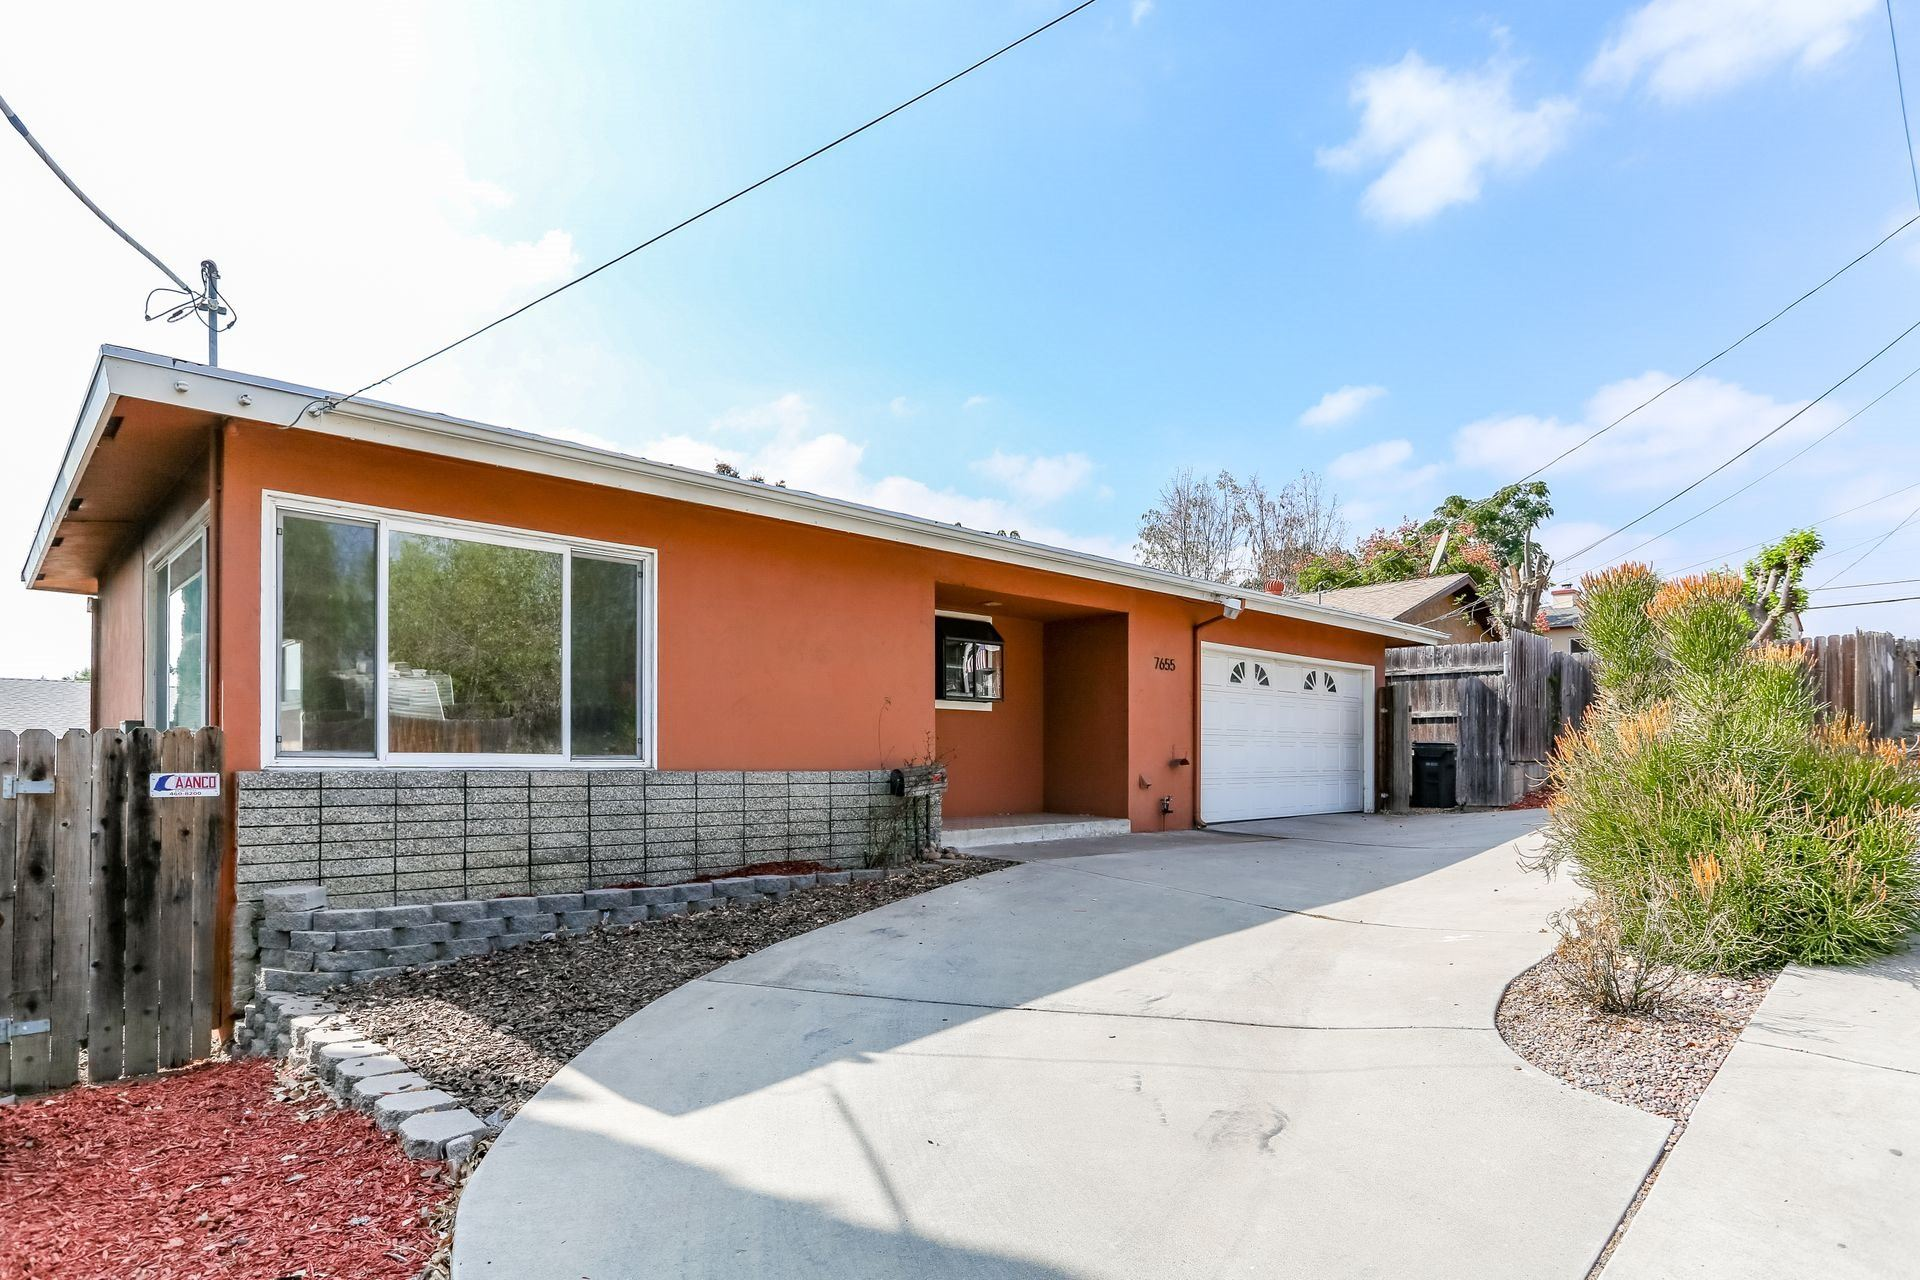 Photo of 7655 San Miguel Ave, Lemon Grove, CA 91945 (MLS # 200049605)